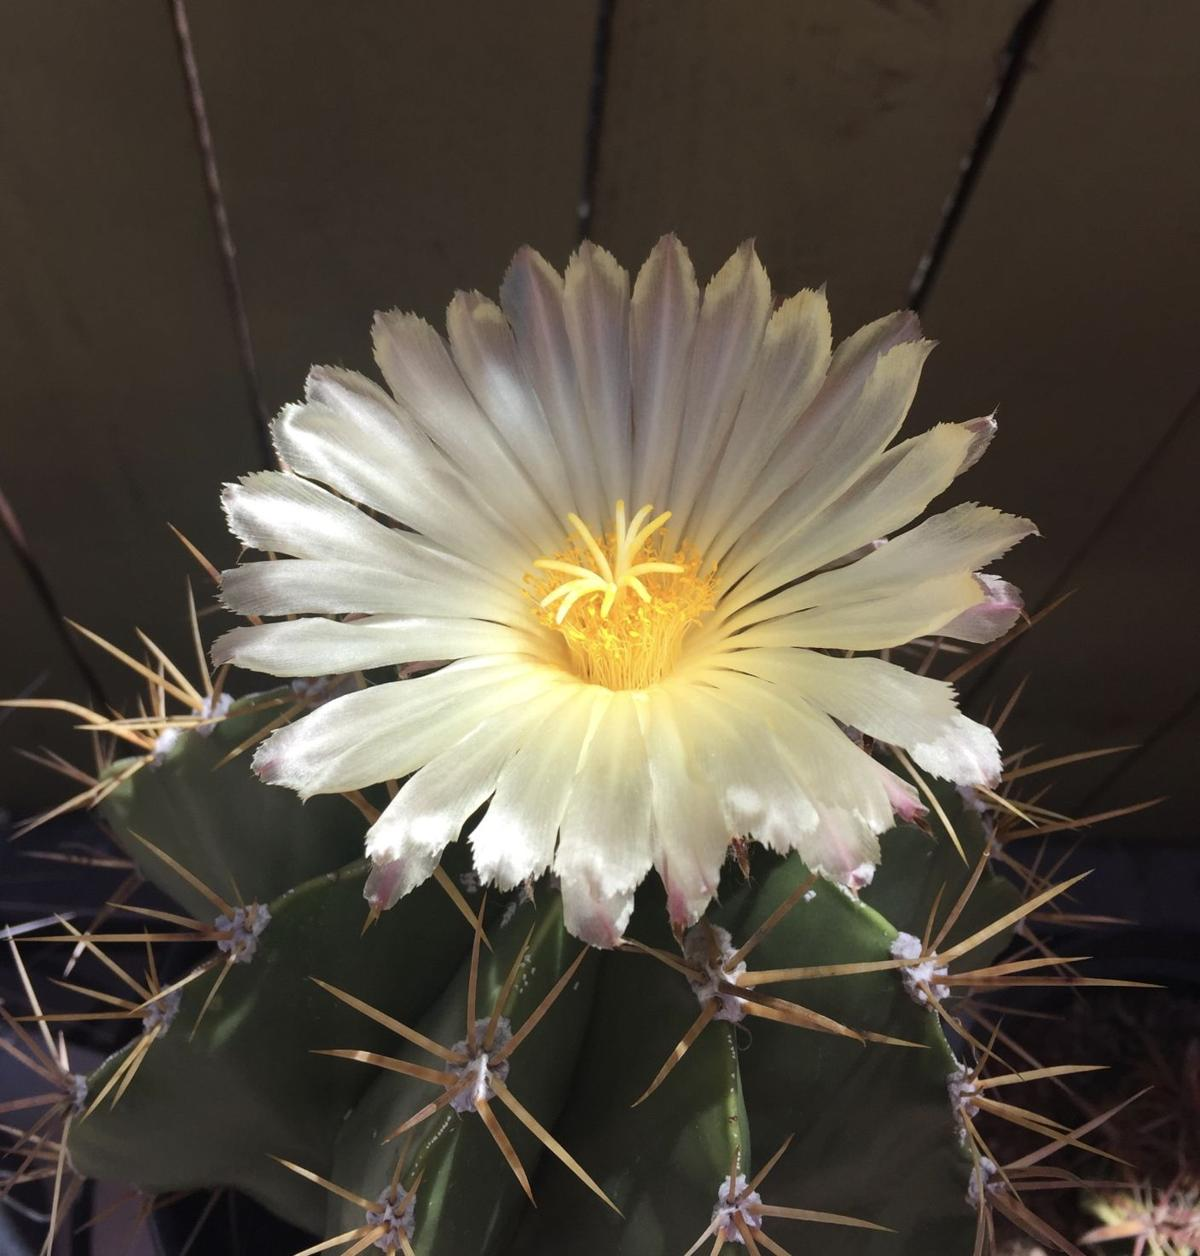 These Photos Of Cactus Blooms Will Make You Fall In Love With Tucson